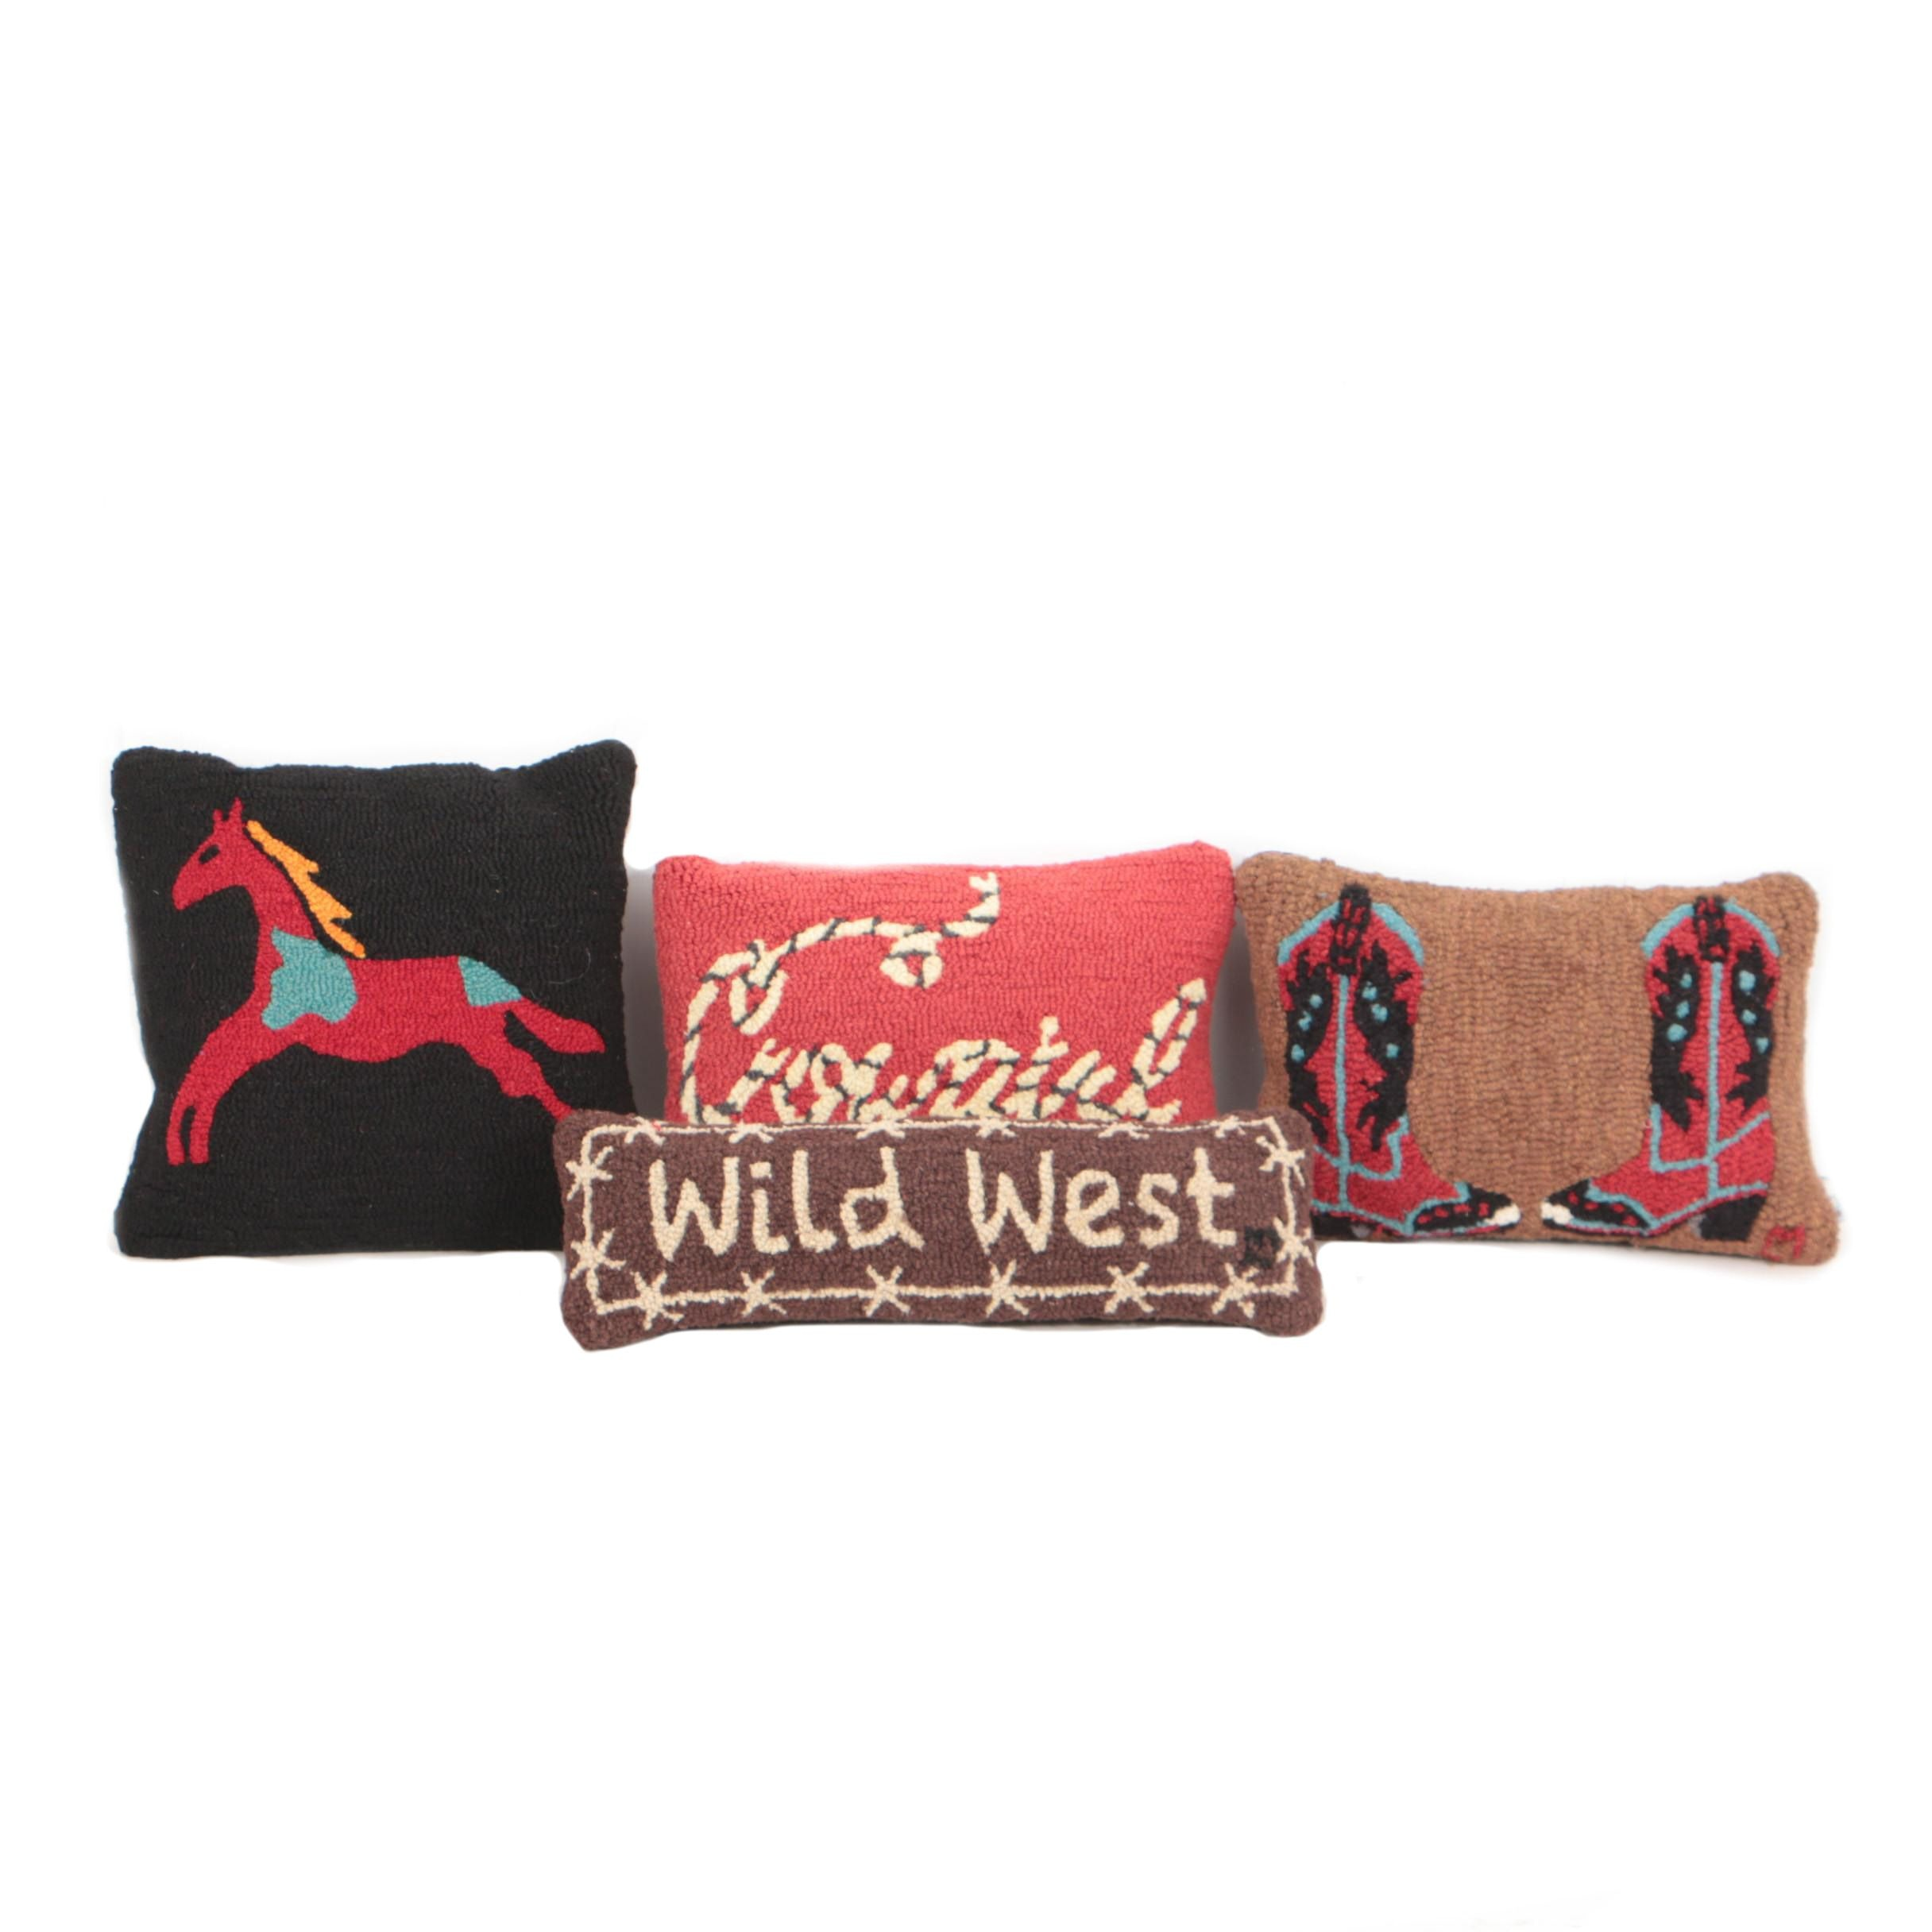 Pendleton and Chandler 4 Corners Hand Hooked Wool Throw Pillows